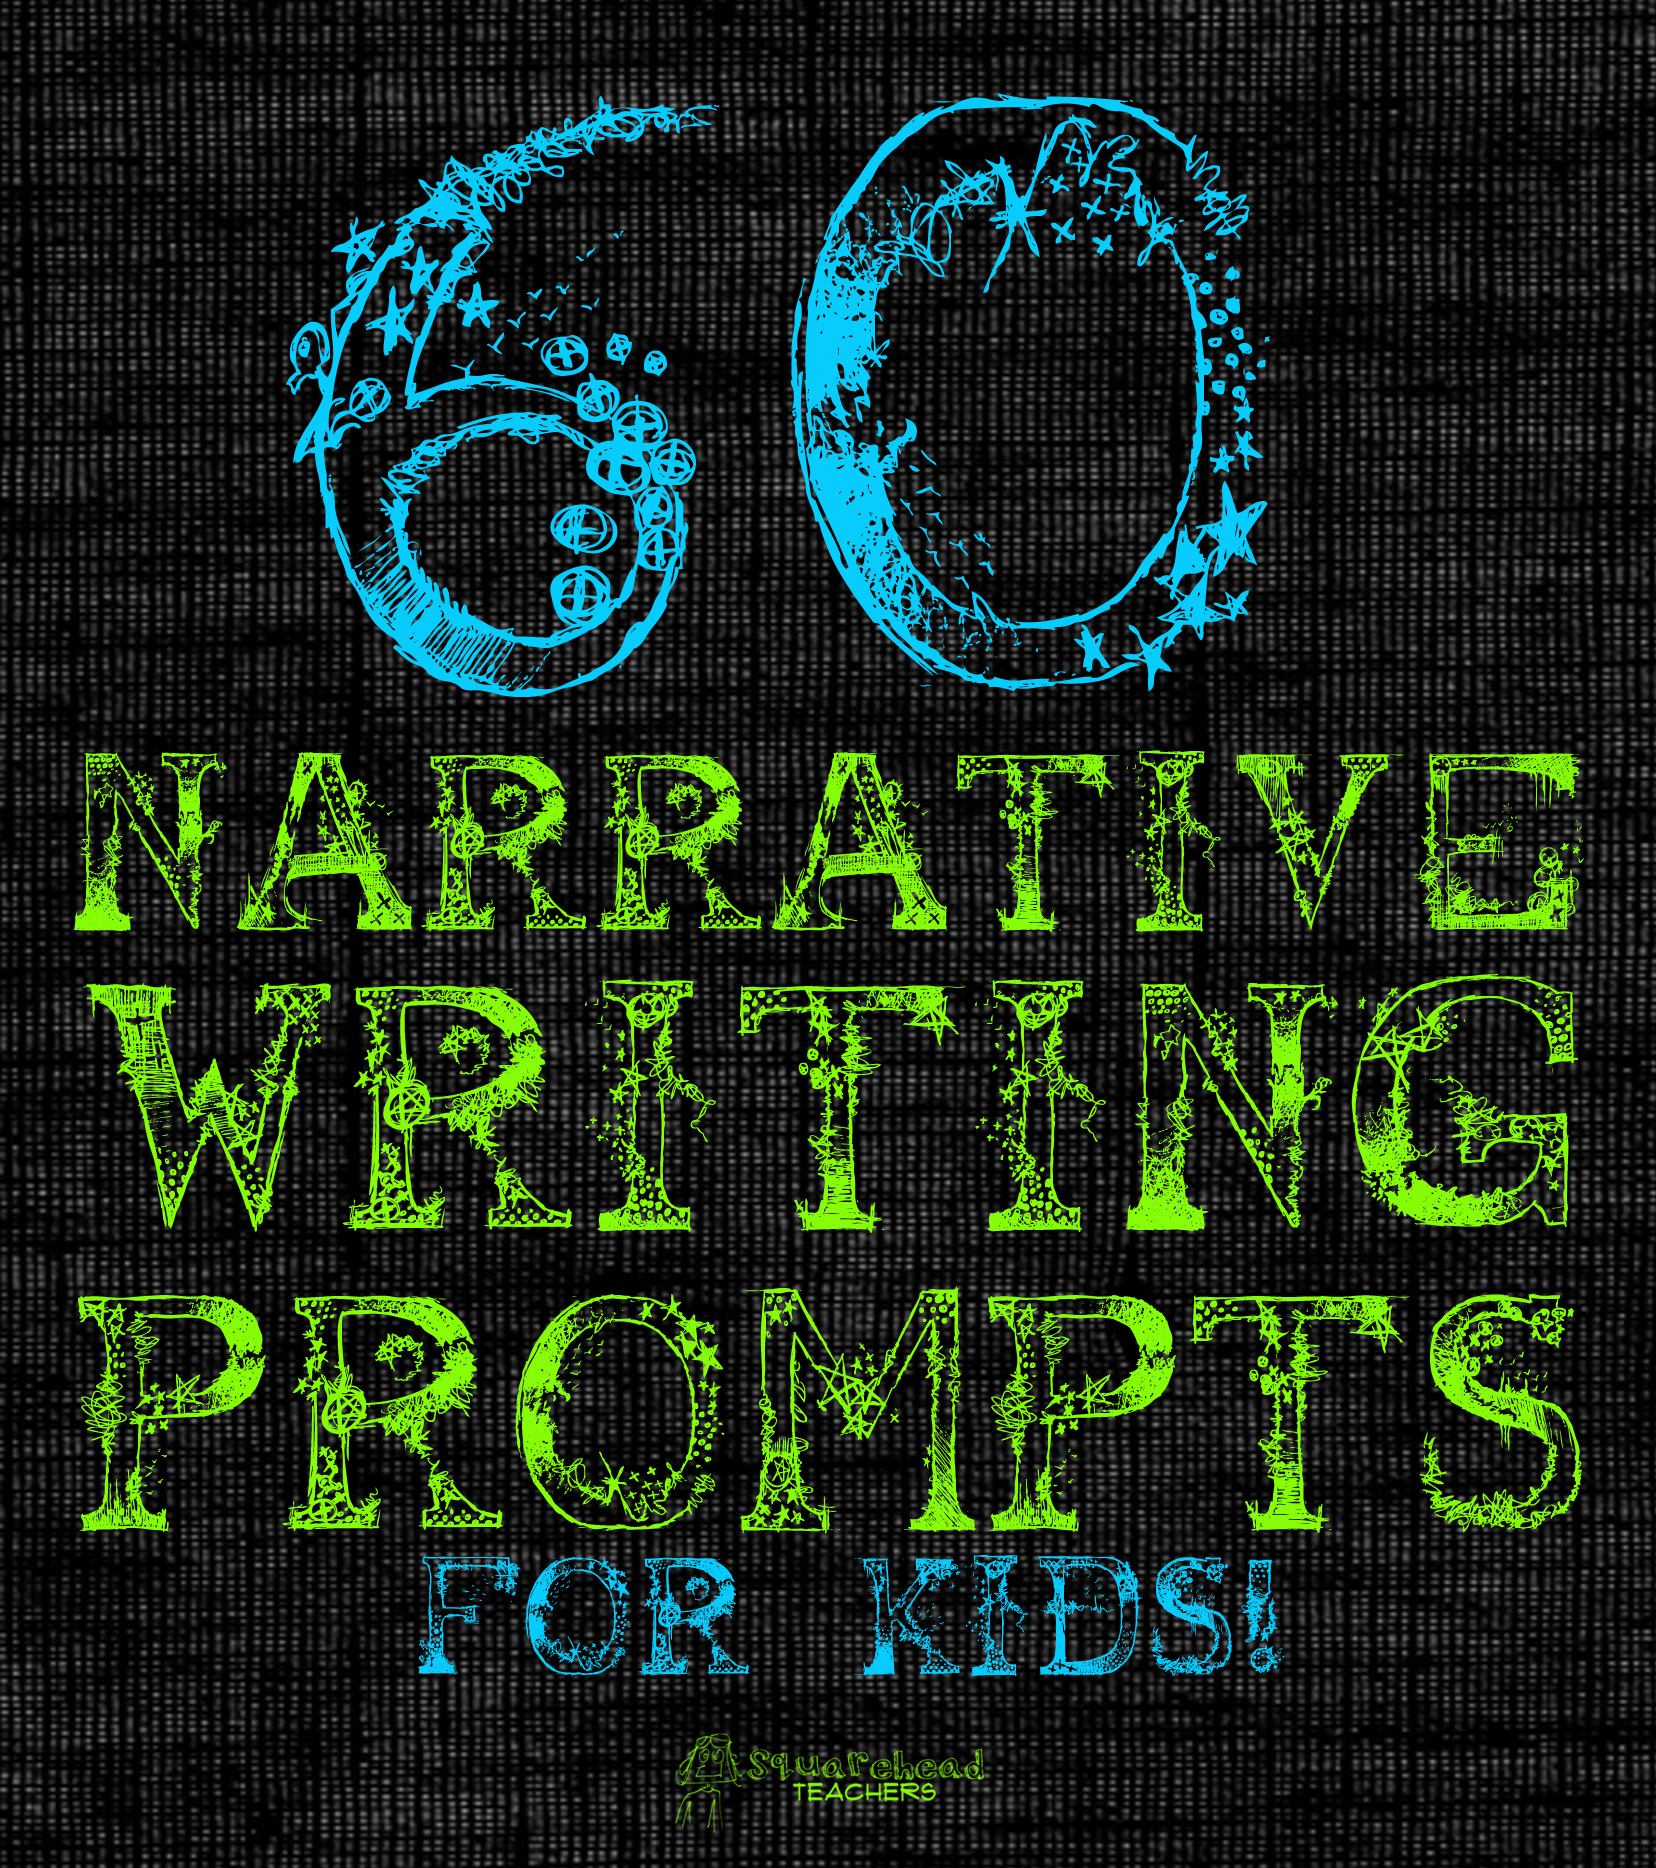 Fiction writing prompts for kids